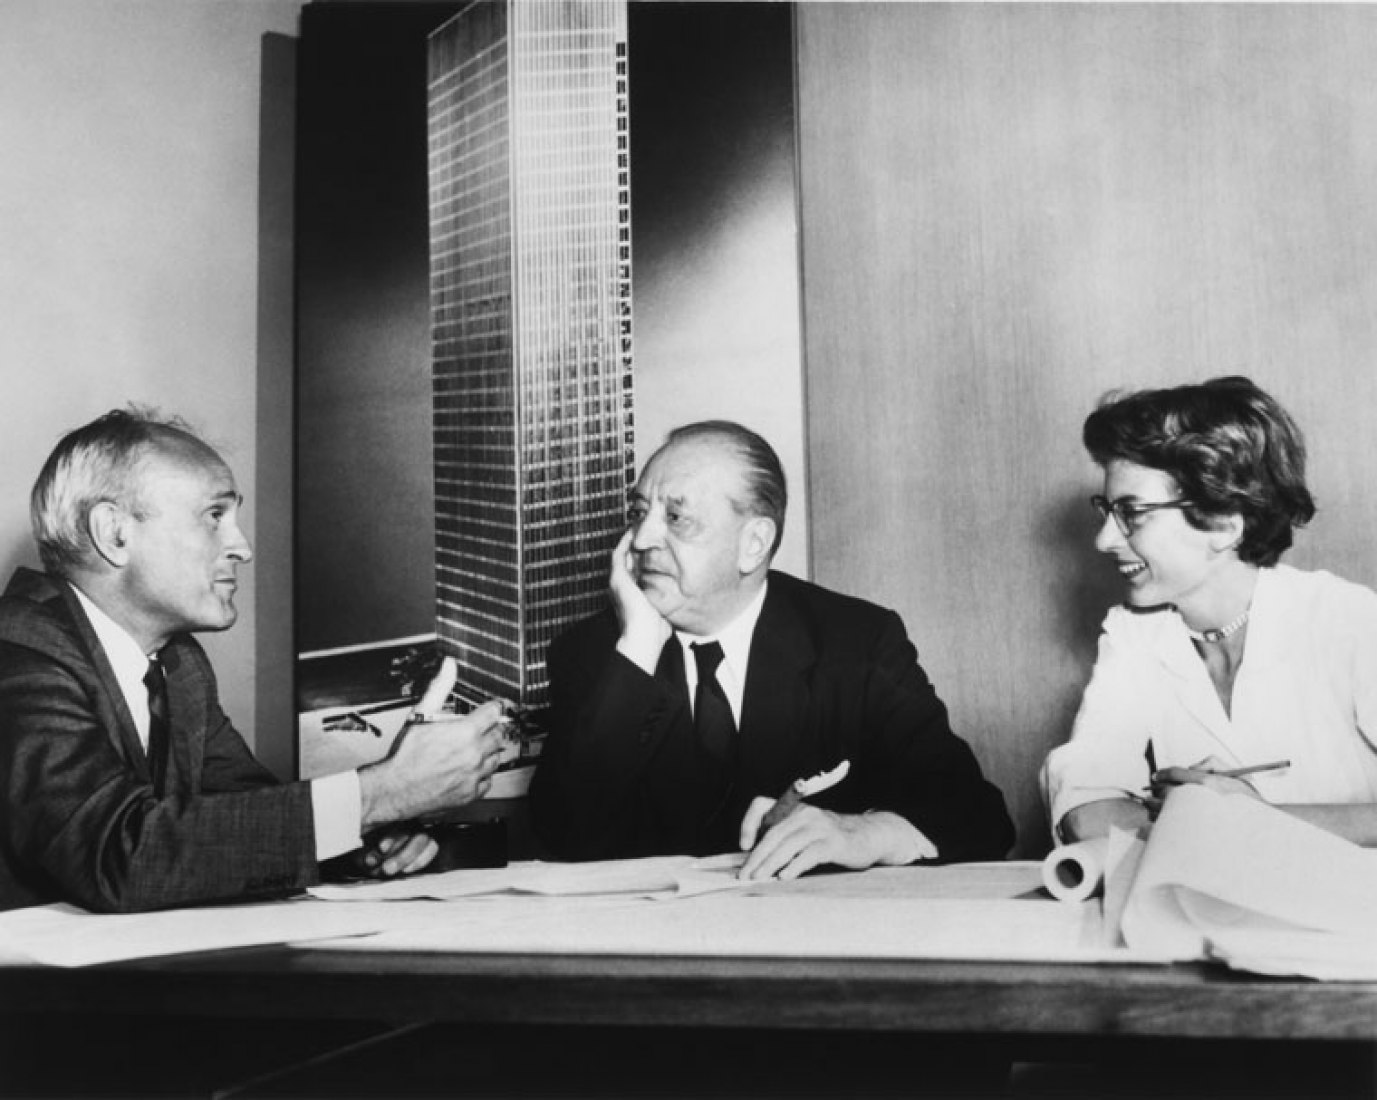 Philip Johnson, Ludwig Mies van der Rohe, and Phyllis Lambert in front of an image of the model for the Seagram building, New York, 1955. Gelatin silver print, 7 1/2 × 9 3/8 in. Photographer unknown. Fonds Phyllis Lambert, Canadian Centre for Architecture, Montreal. © United Press International.